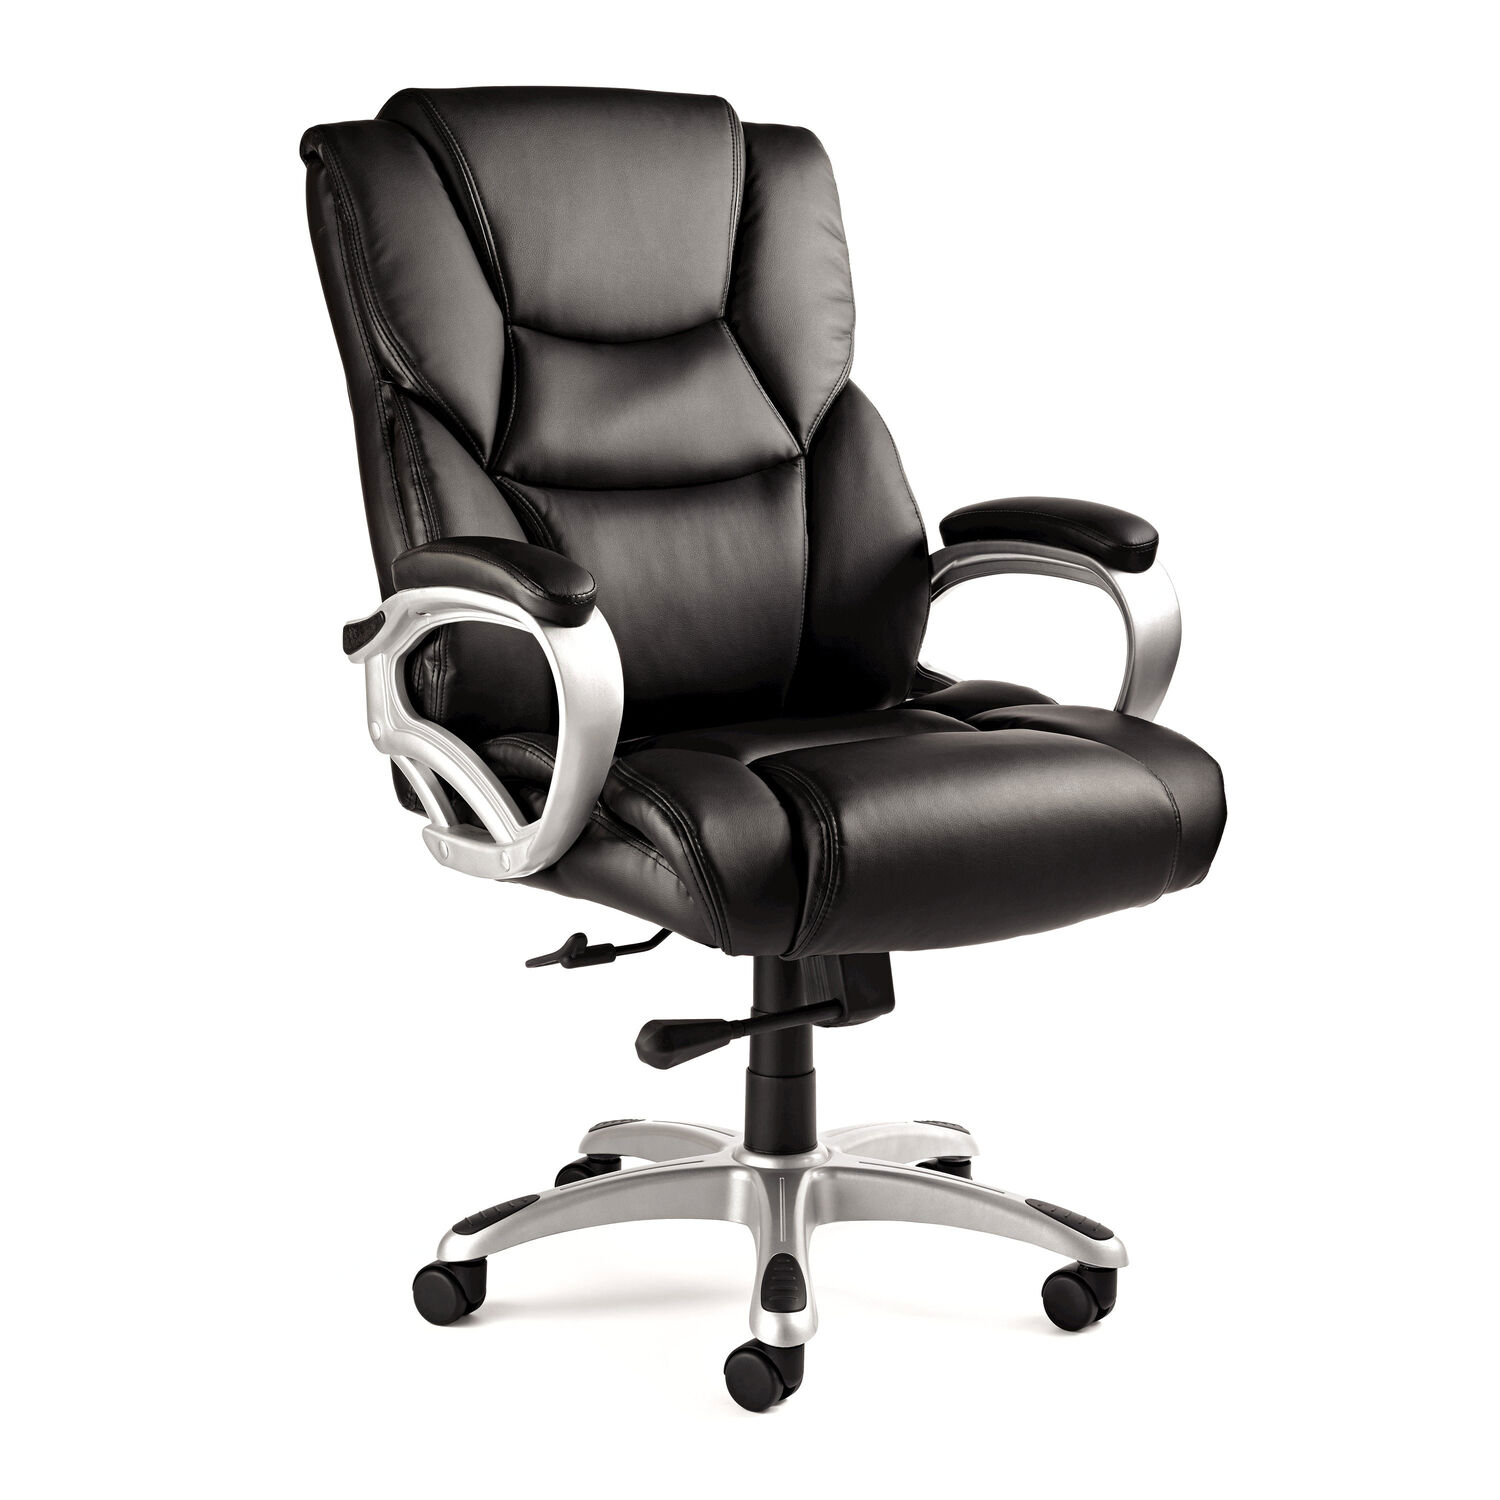 Office chairs for big and tall - Samsonite Hamburg Big Tall Premium Bonded Leather Chair In The Color Black